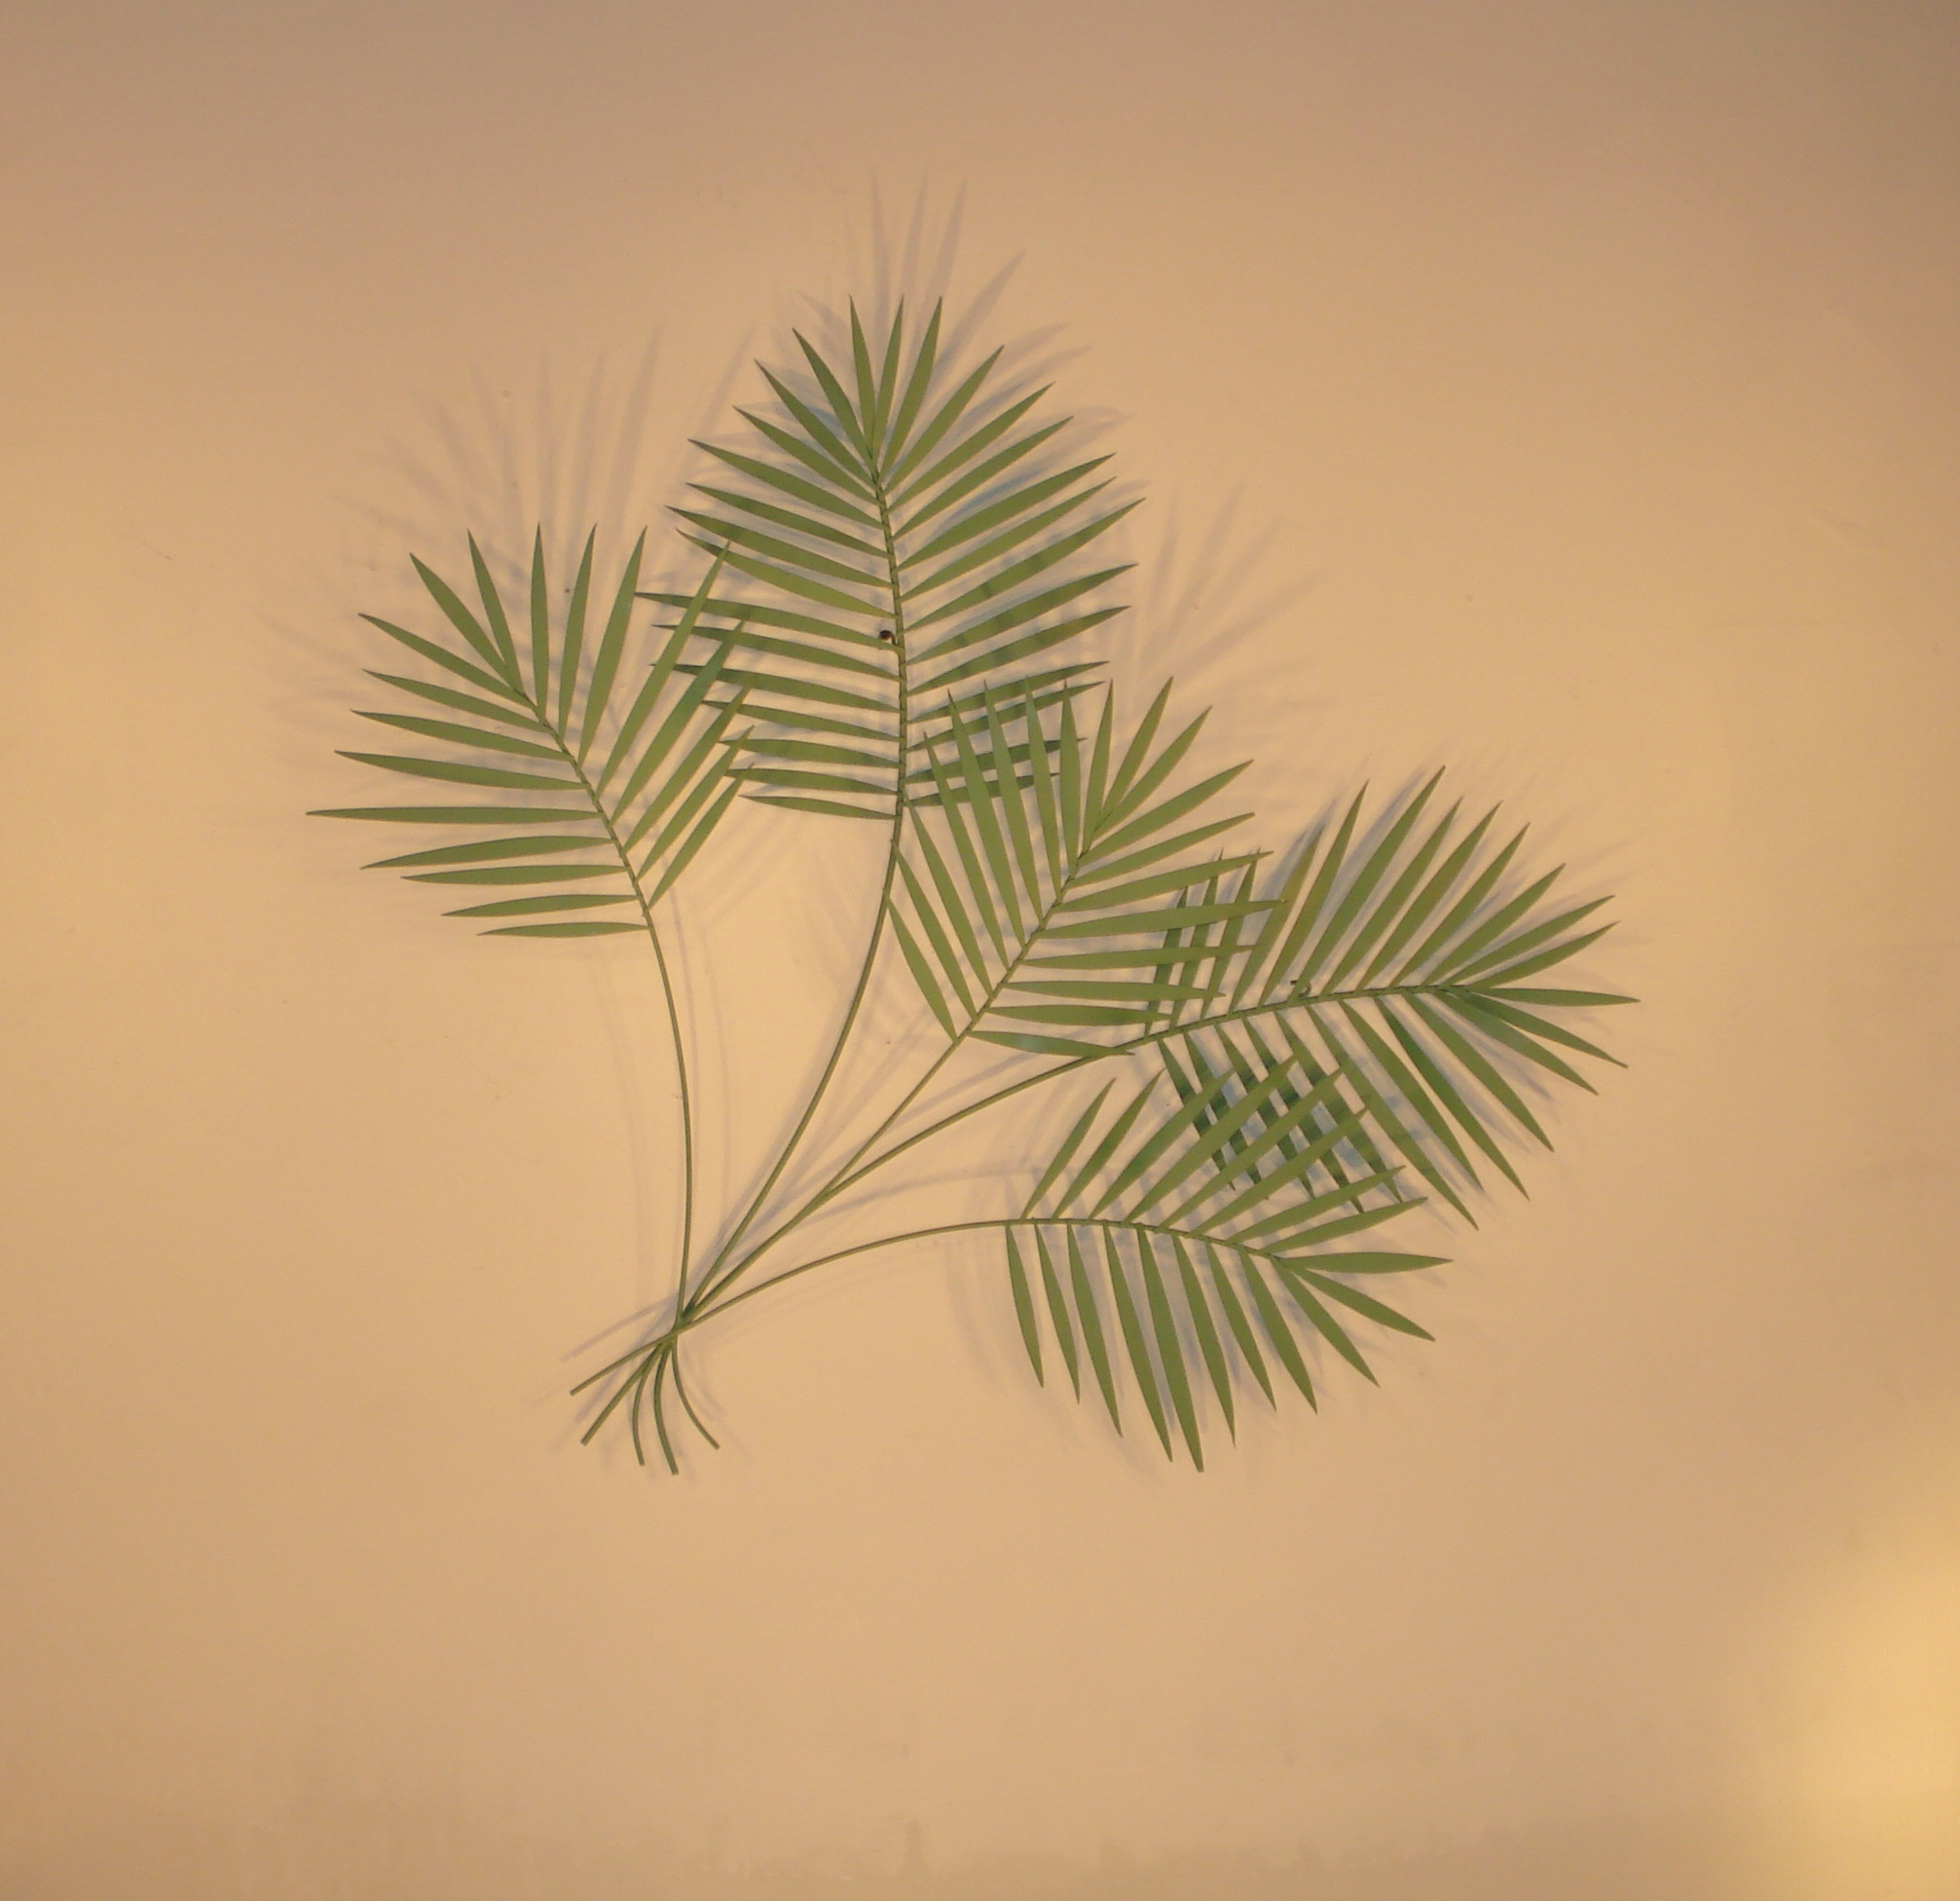 Tropical Metal Art, Wall Sculptures And Decor - Gurtan pertaining to Leaves Metal Sculpture Wall Decor (Image 30 of 30)